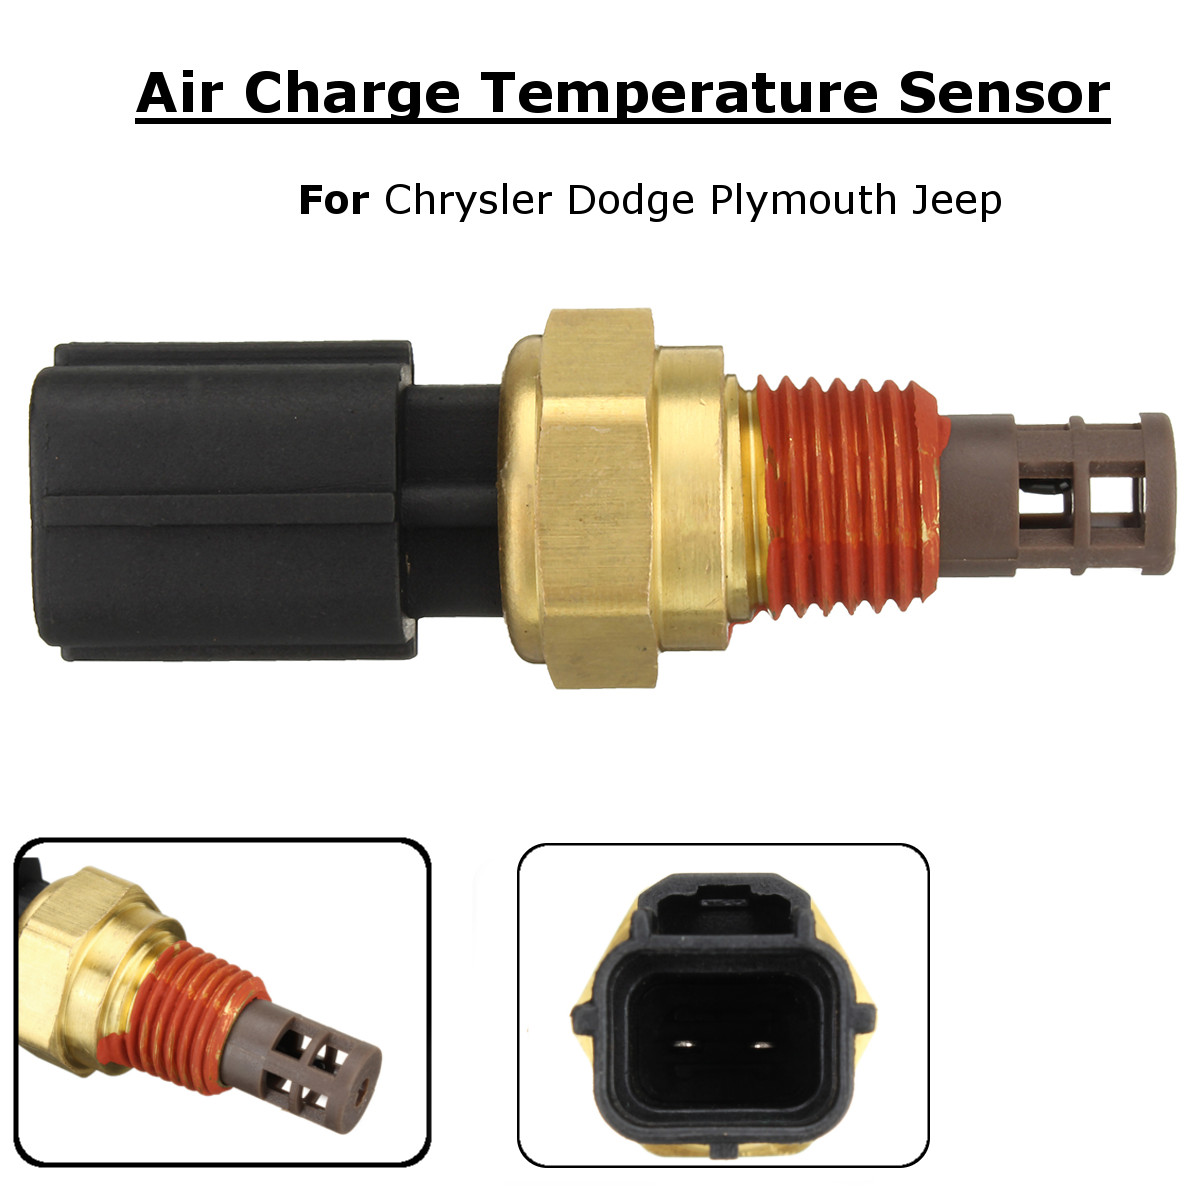 Air Charge Temperature Sensor for Chrysler Dodge for Jeep 56027872 5S1025